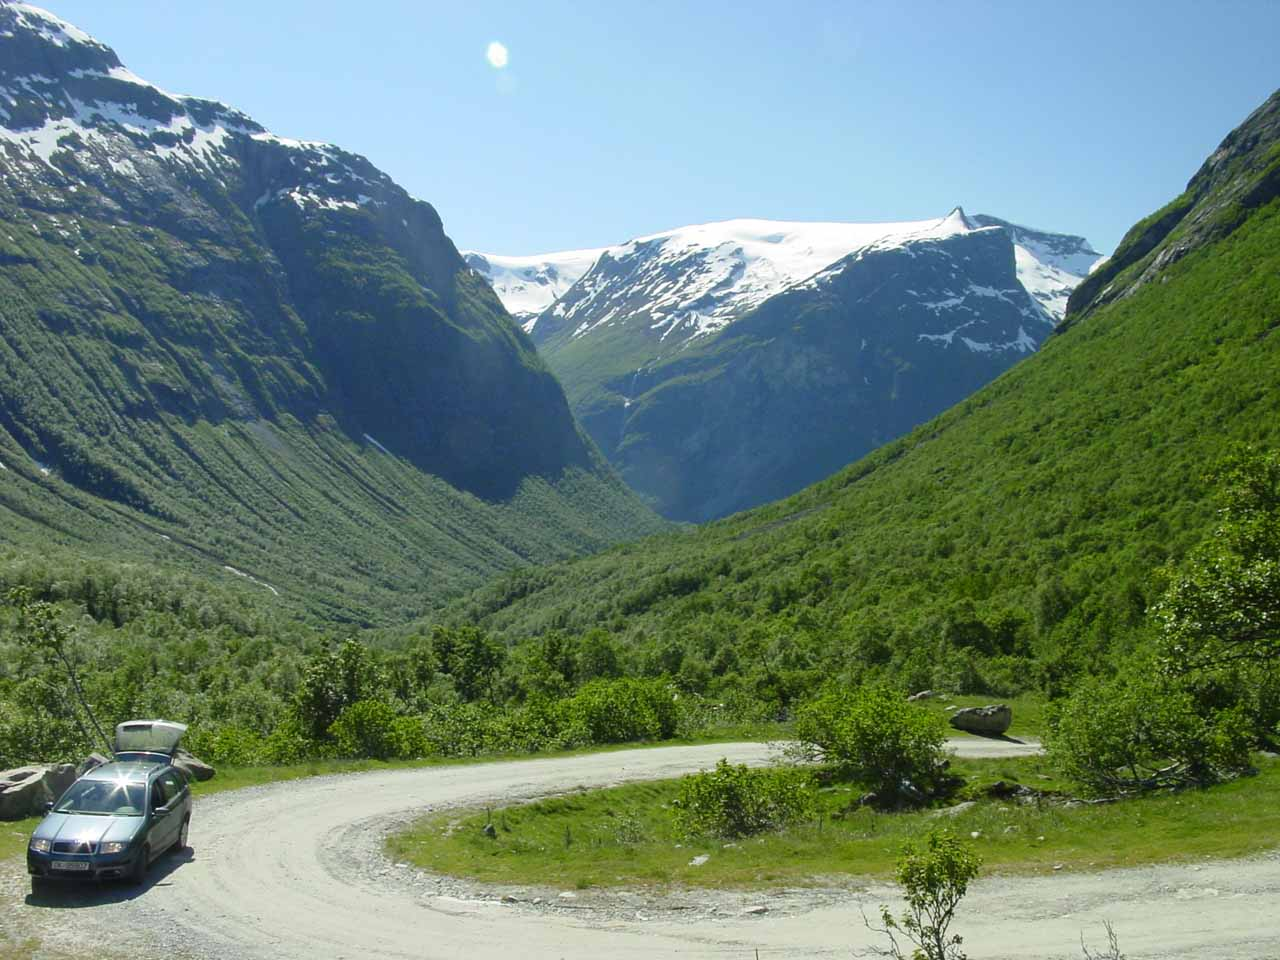 Looking down at the hairpin turn right next to Høysteinfossen